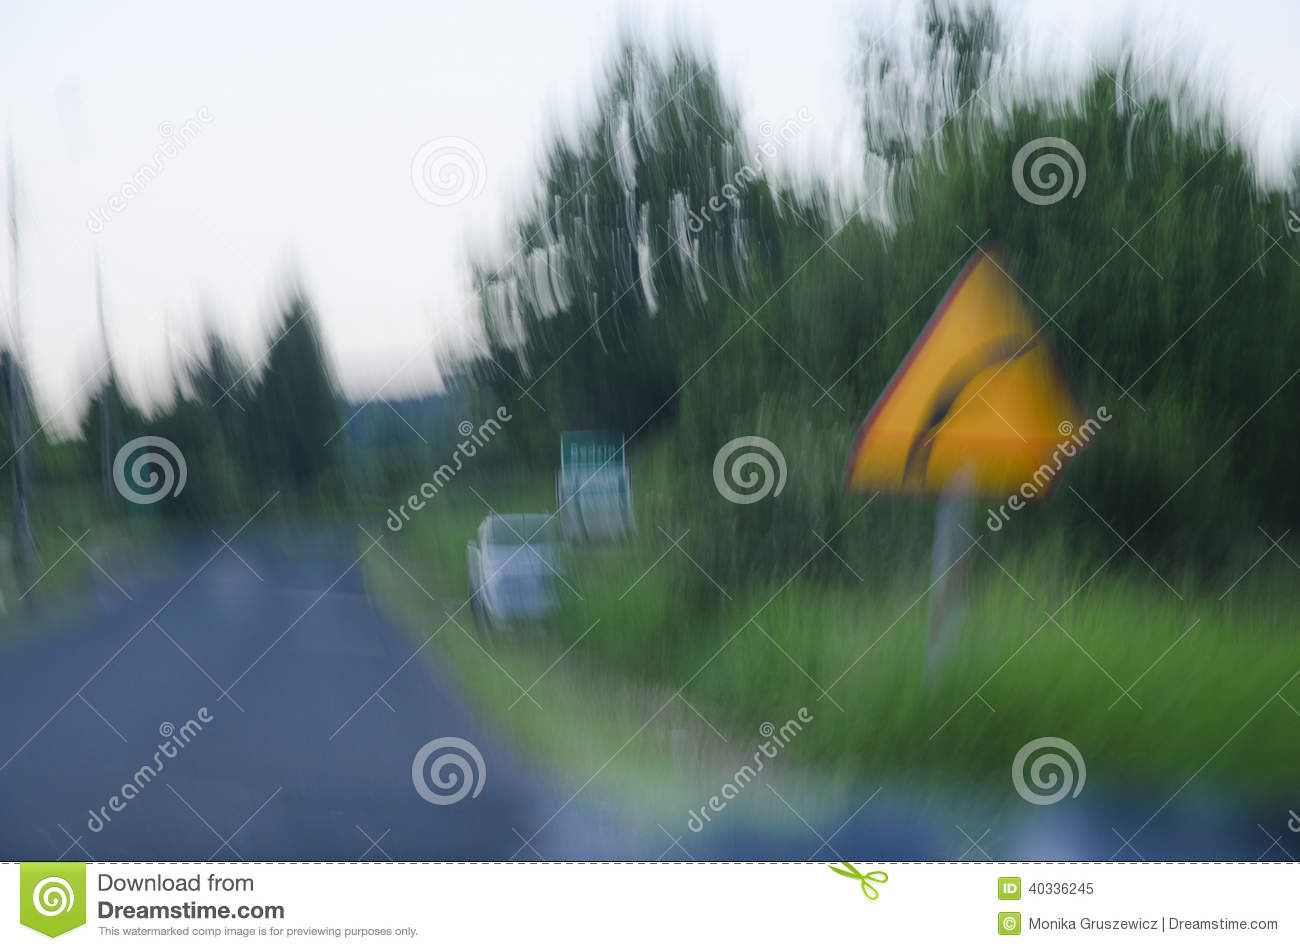 Impaired Vision After Alcohol. Stock Photo - Image: 40336245